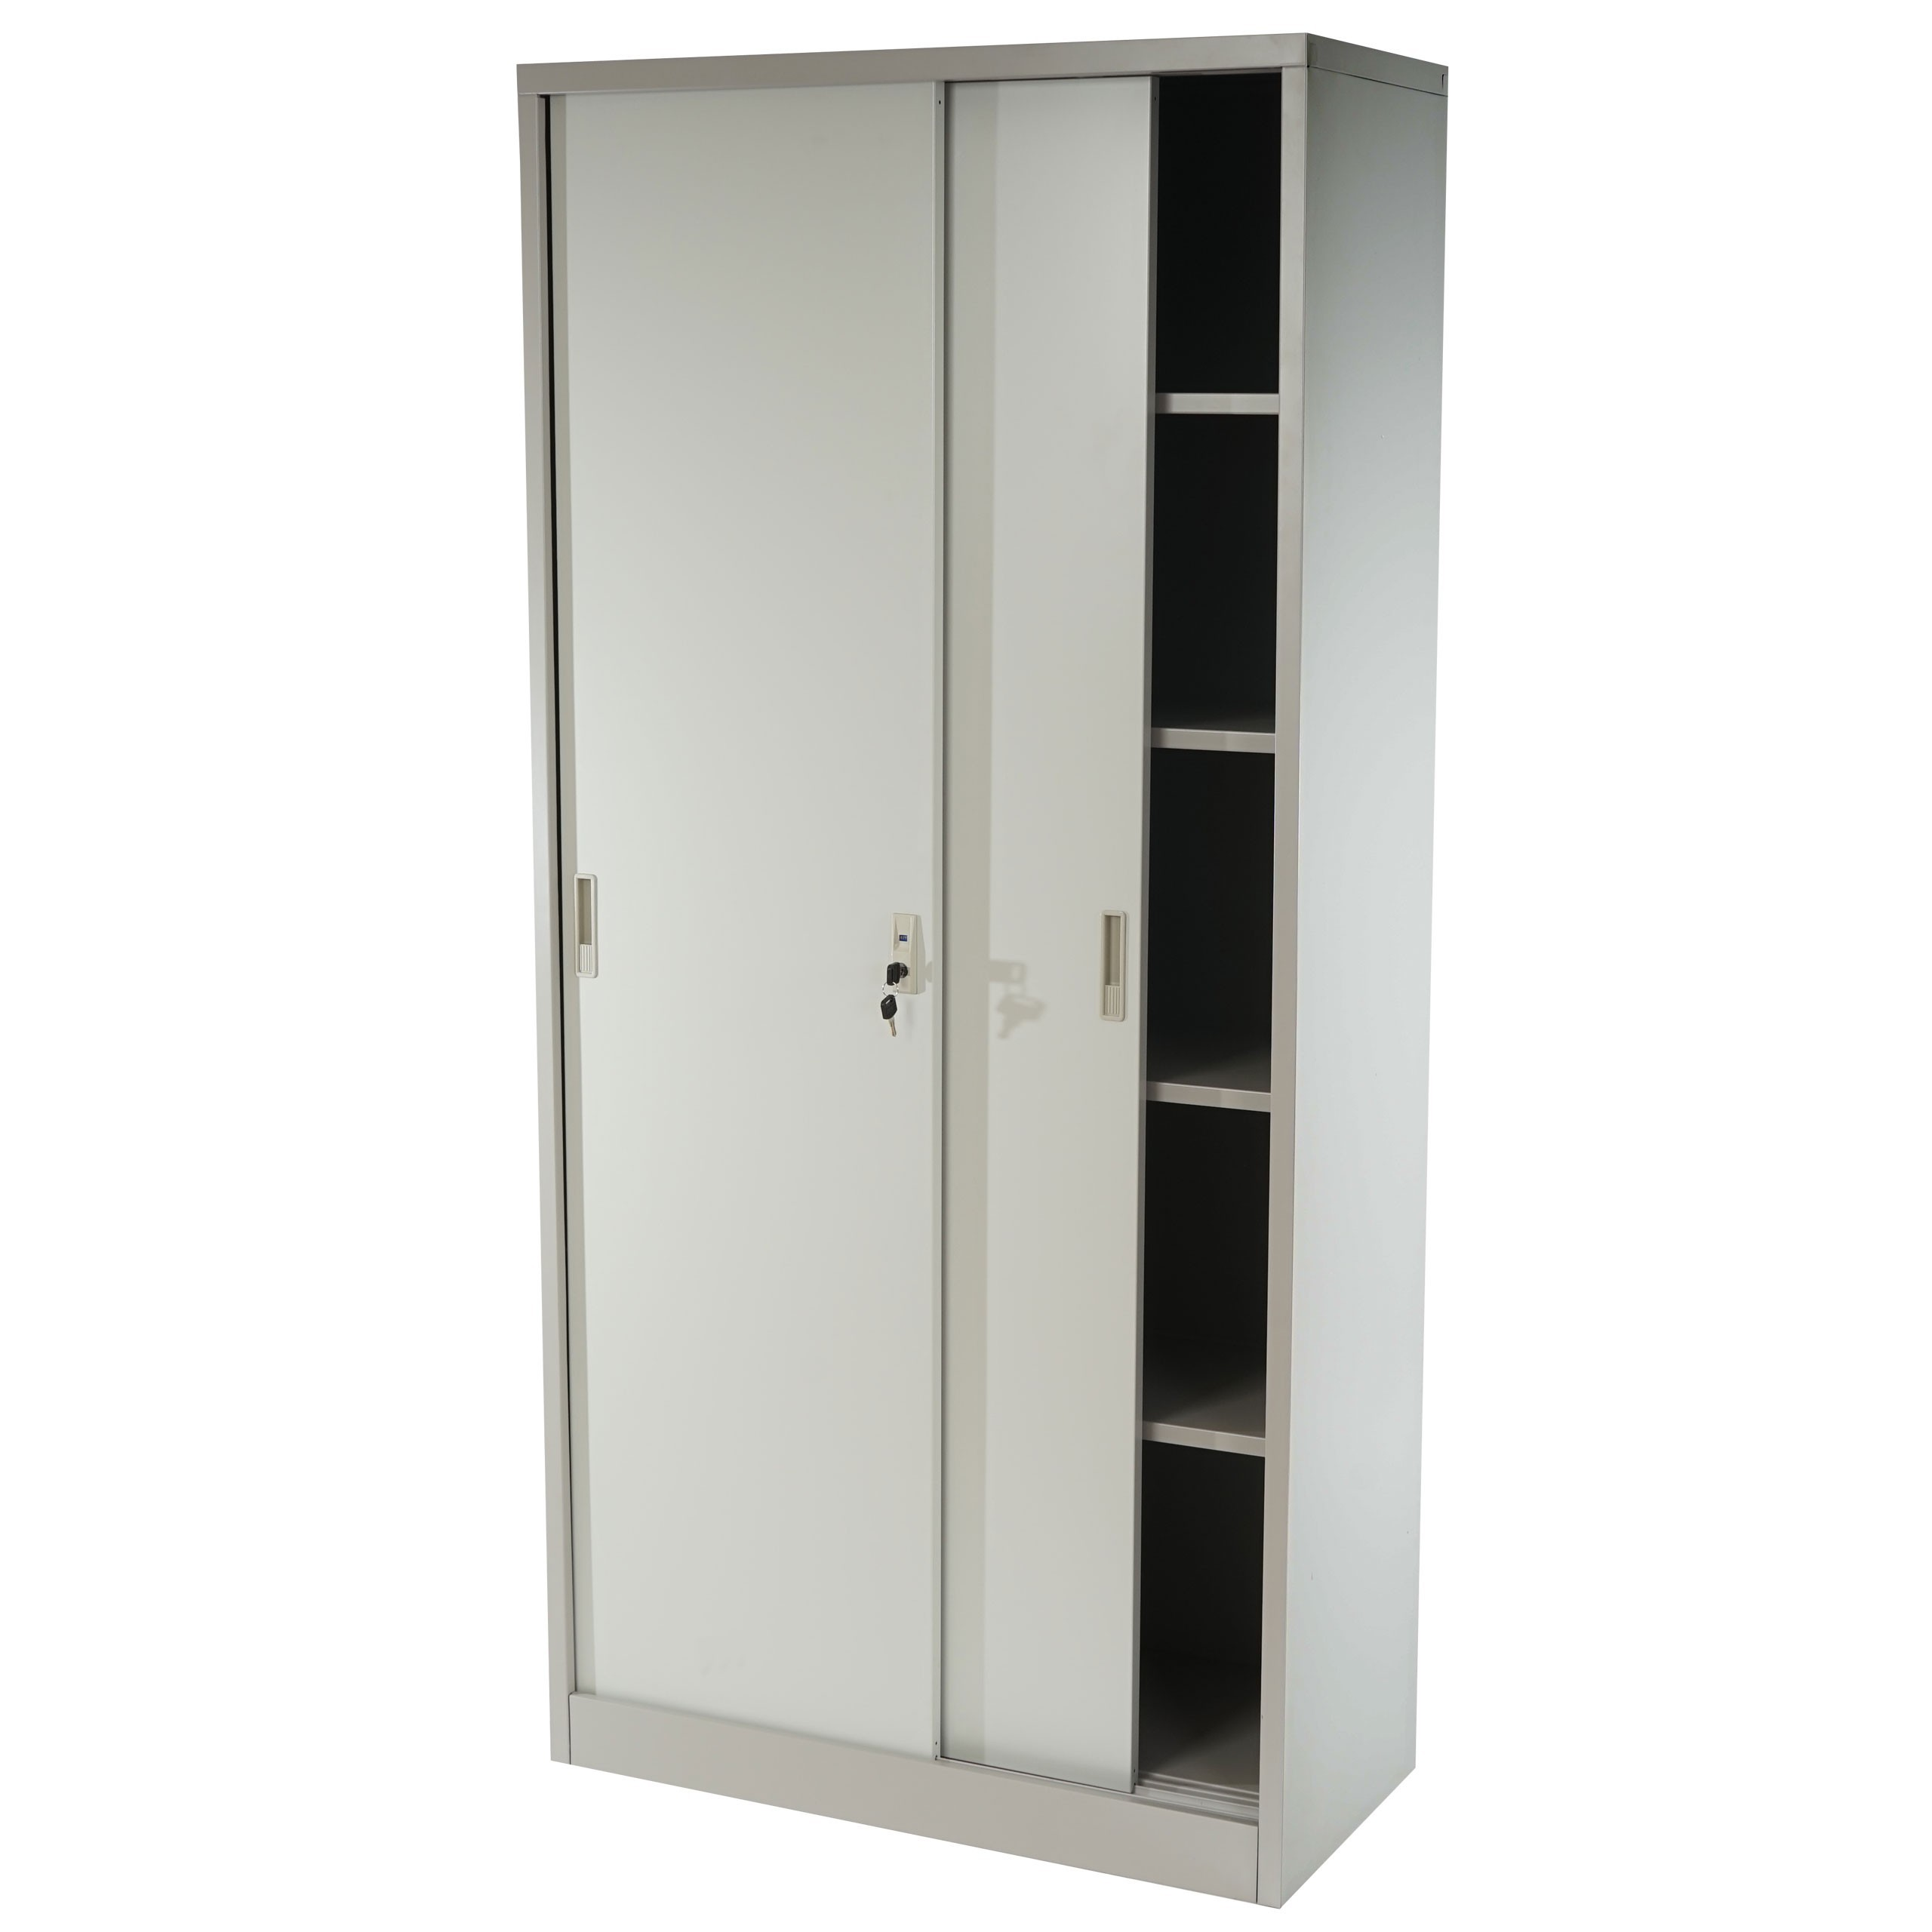 armoire profondeur 30 cm portes coulissantes armoire id es de d coration de maison aodwelanqm. Black Bedroom Furniture Sets. Home Design Ideas